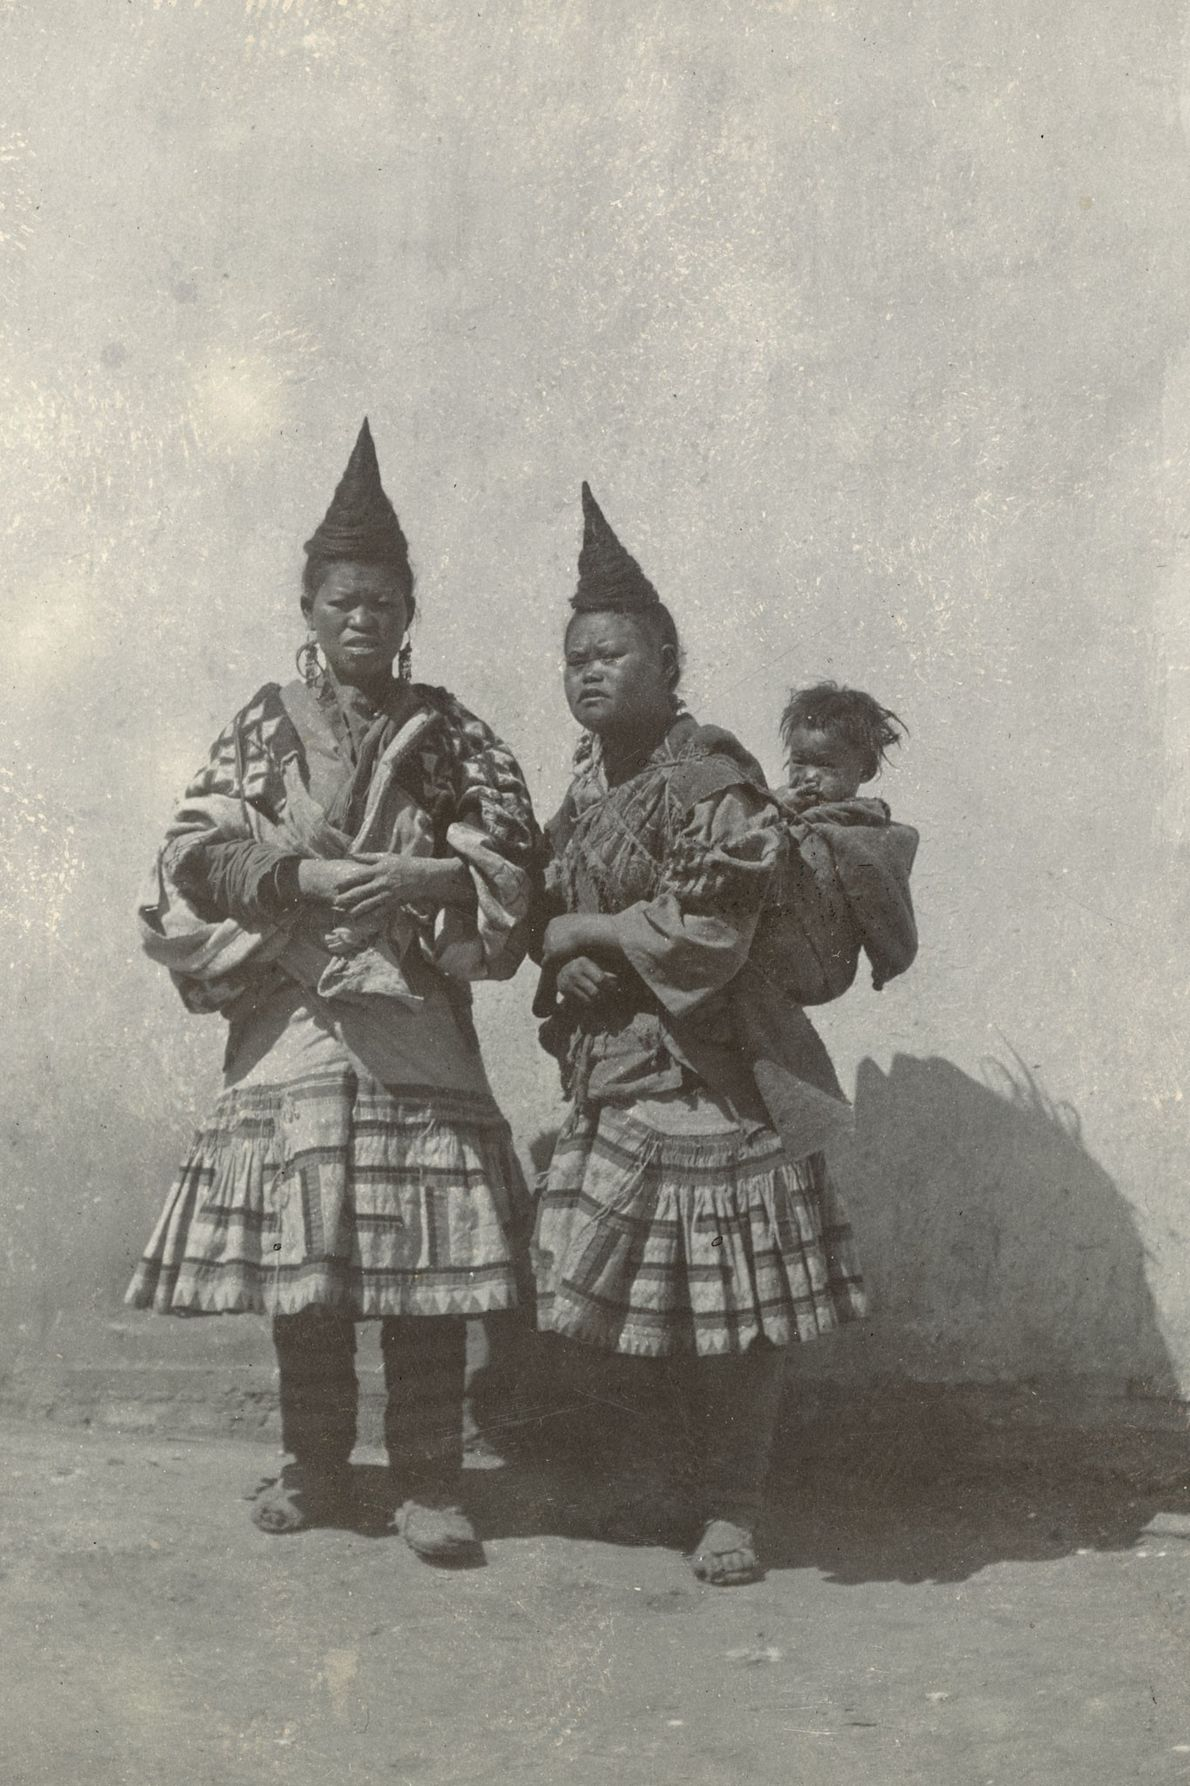 In the Yunnan Province, China, the horn-shaped hairstyle these women are wearing indicates they have had ...